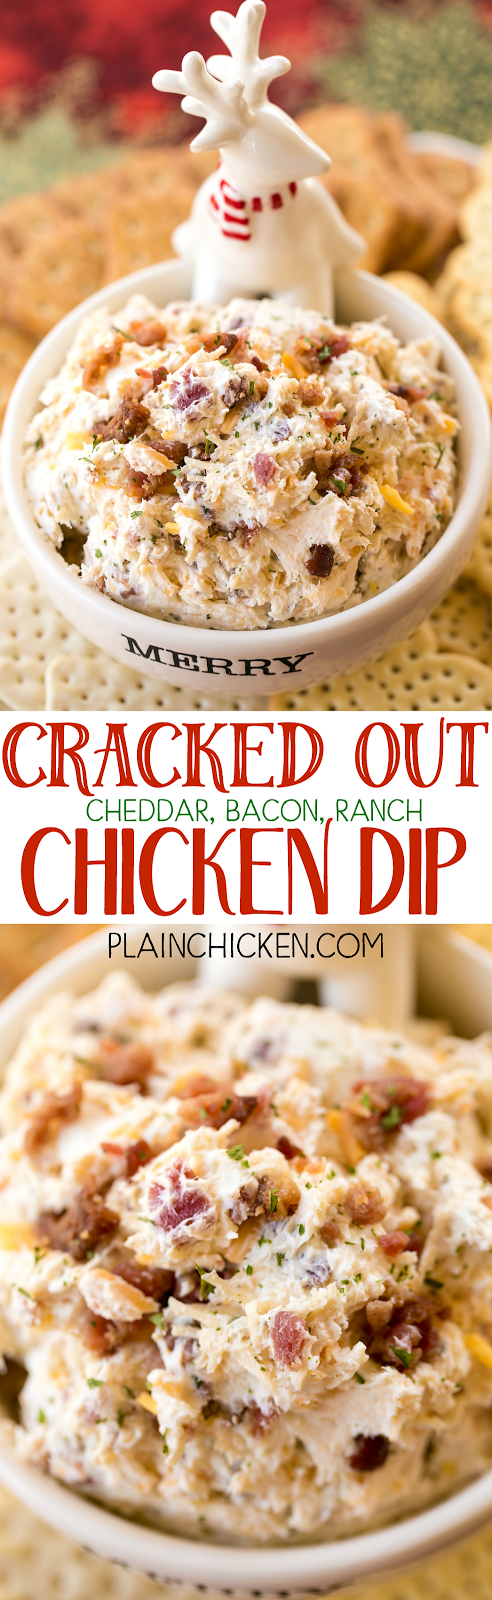 Cracked Out Chicken Dip Plain Chicken